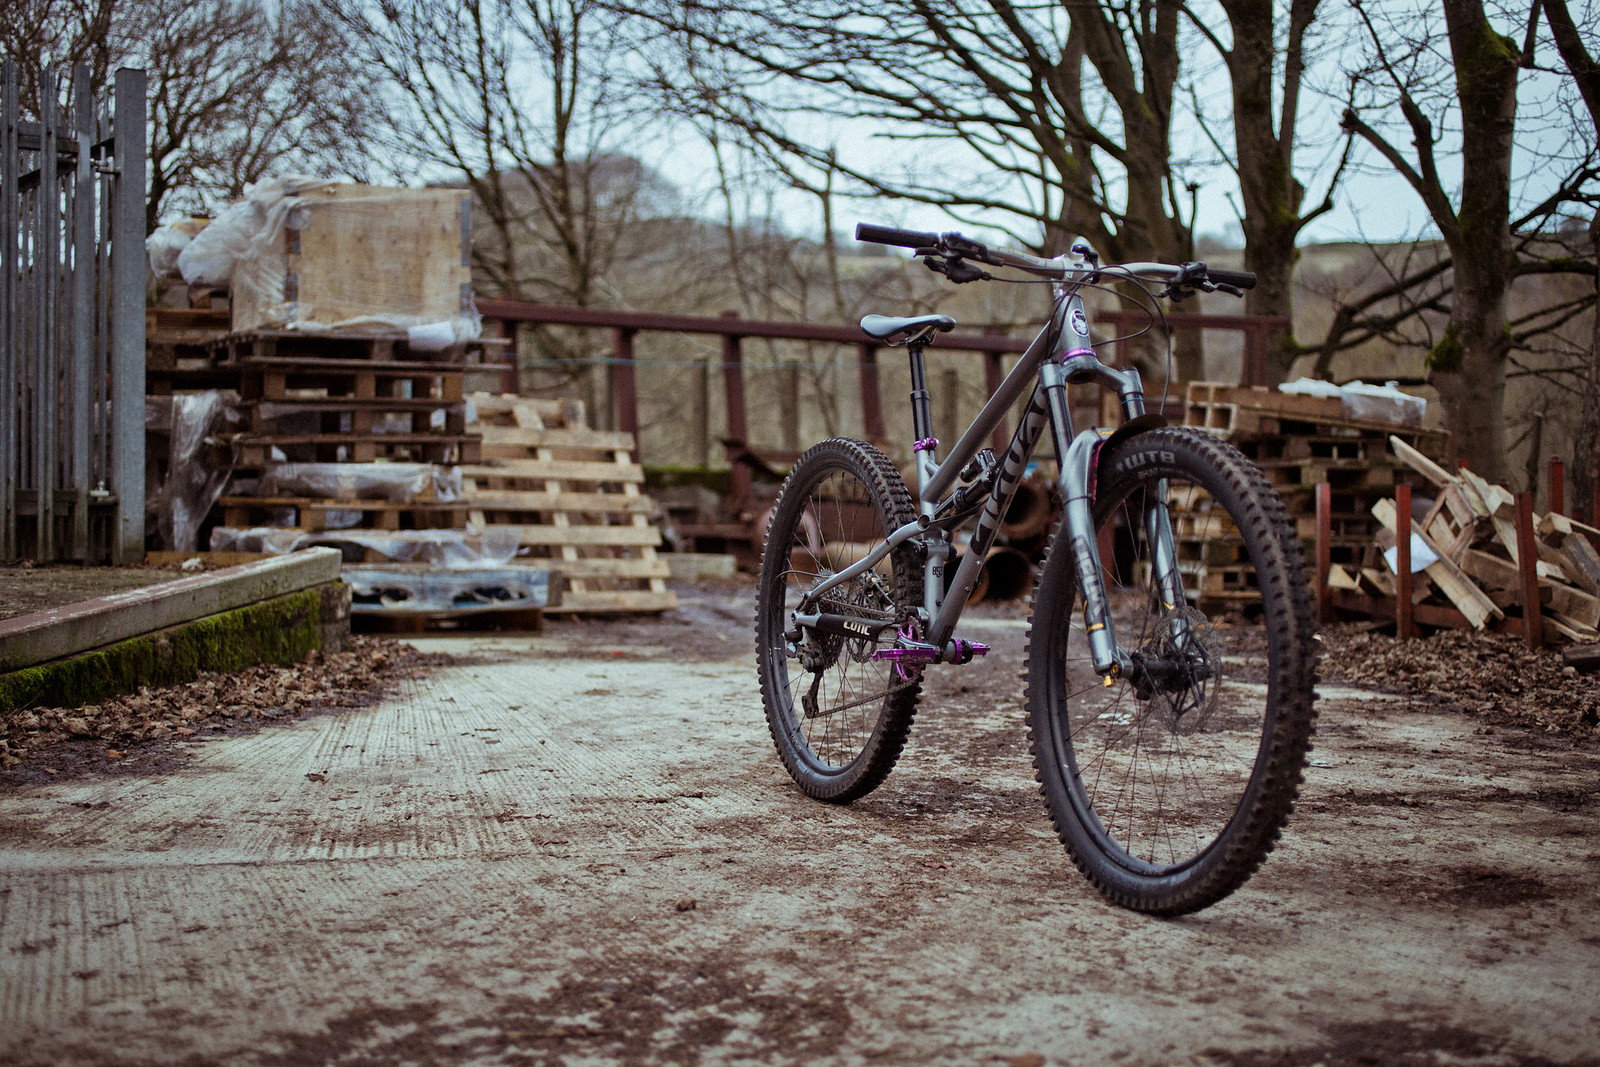 Staff Bike Sam, enduro, mountainbike, mountain bike, race, cycle, steel, steel full suspension, full suspension, uk, made in britain, made in the uk, hand made, handmade, sheffield, england, peak district, peaks, stell, coptic, coatic, steel is real, mountain, trail, adventure, escape, bike, bicycle, ride, awesome, rad, custom, build, 29, 29er, best mountainbike, handmade bicycle, best mountain bike, outdoor, outdoor brand, nature, fast, fastest, winner, gold, purple, top, rider